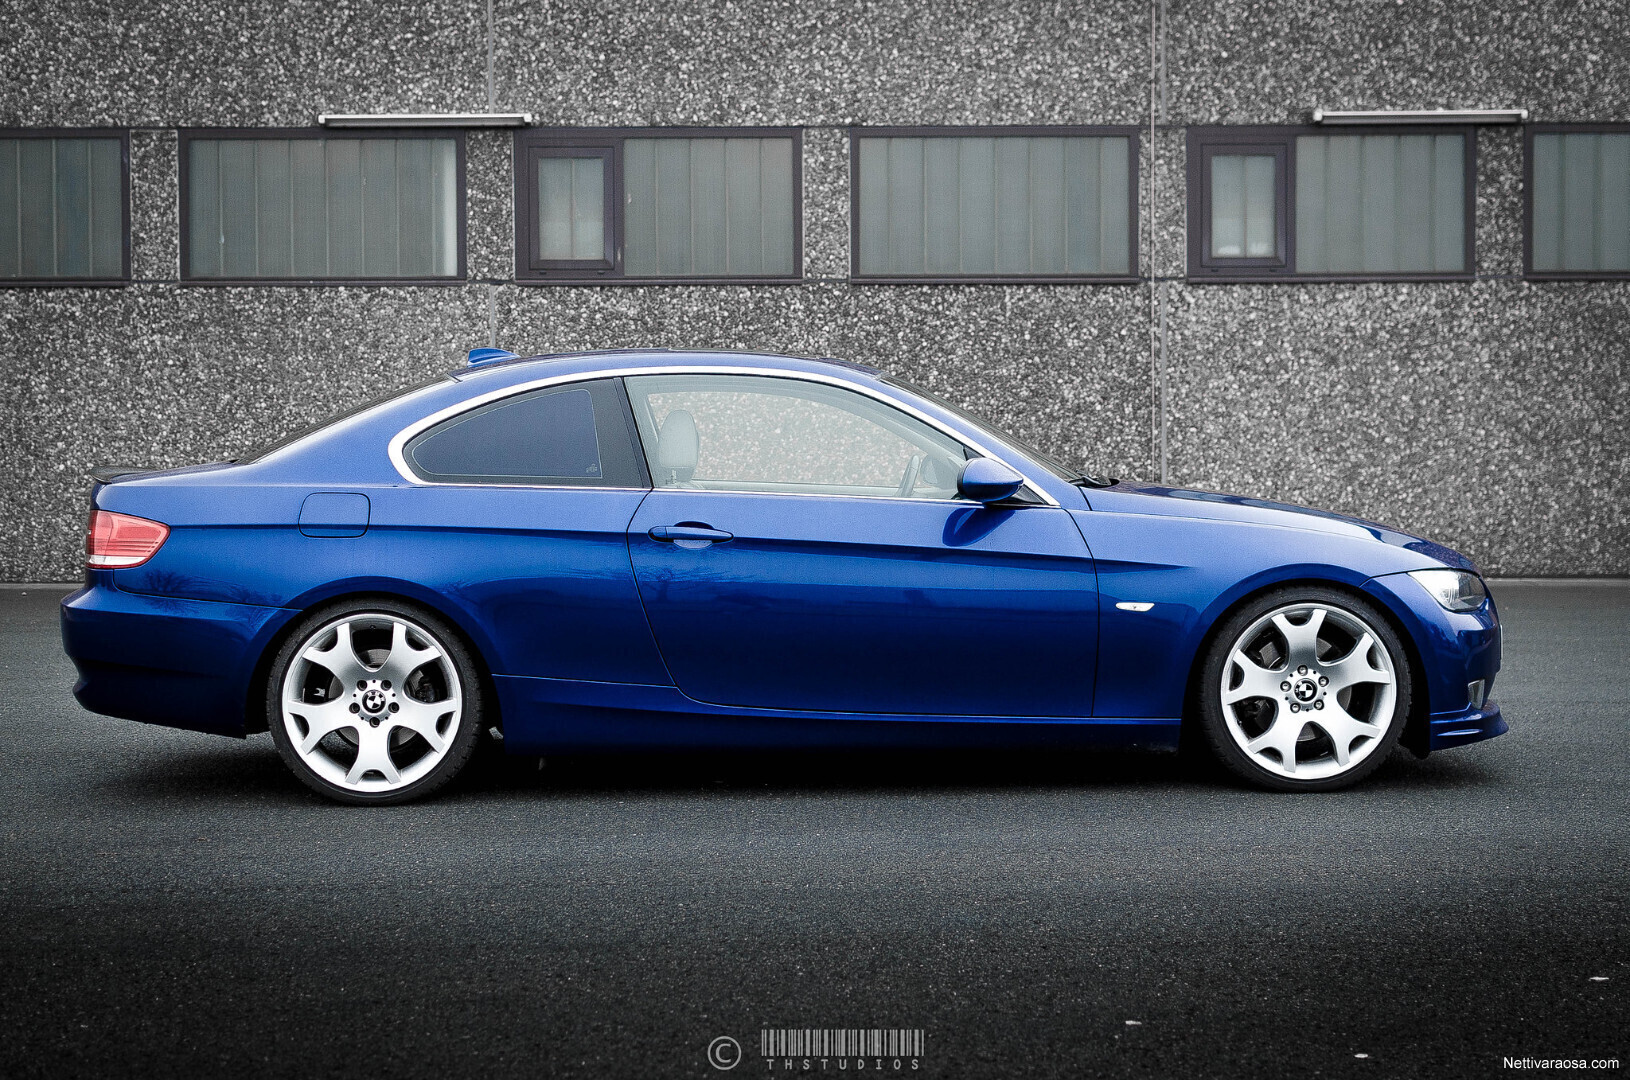 BMW style63 9+10x19  6cea14f046799cad-large